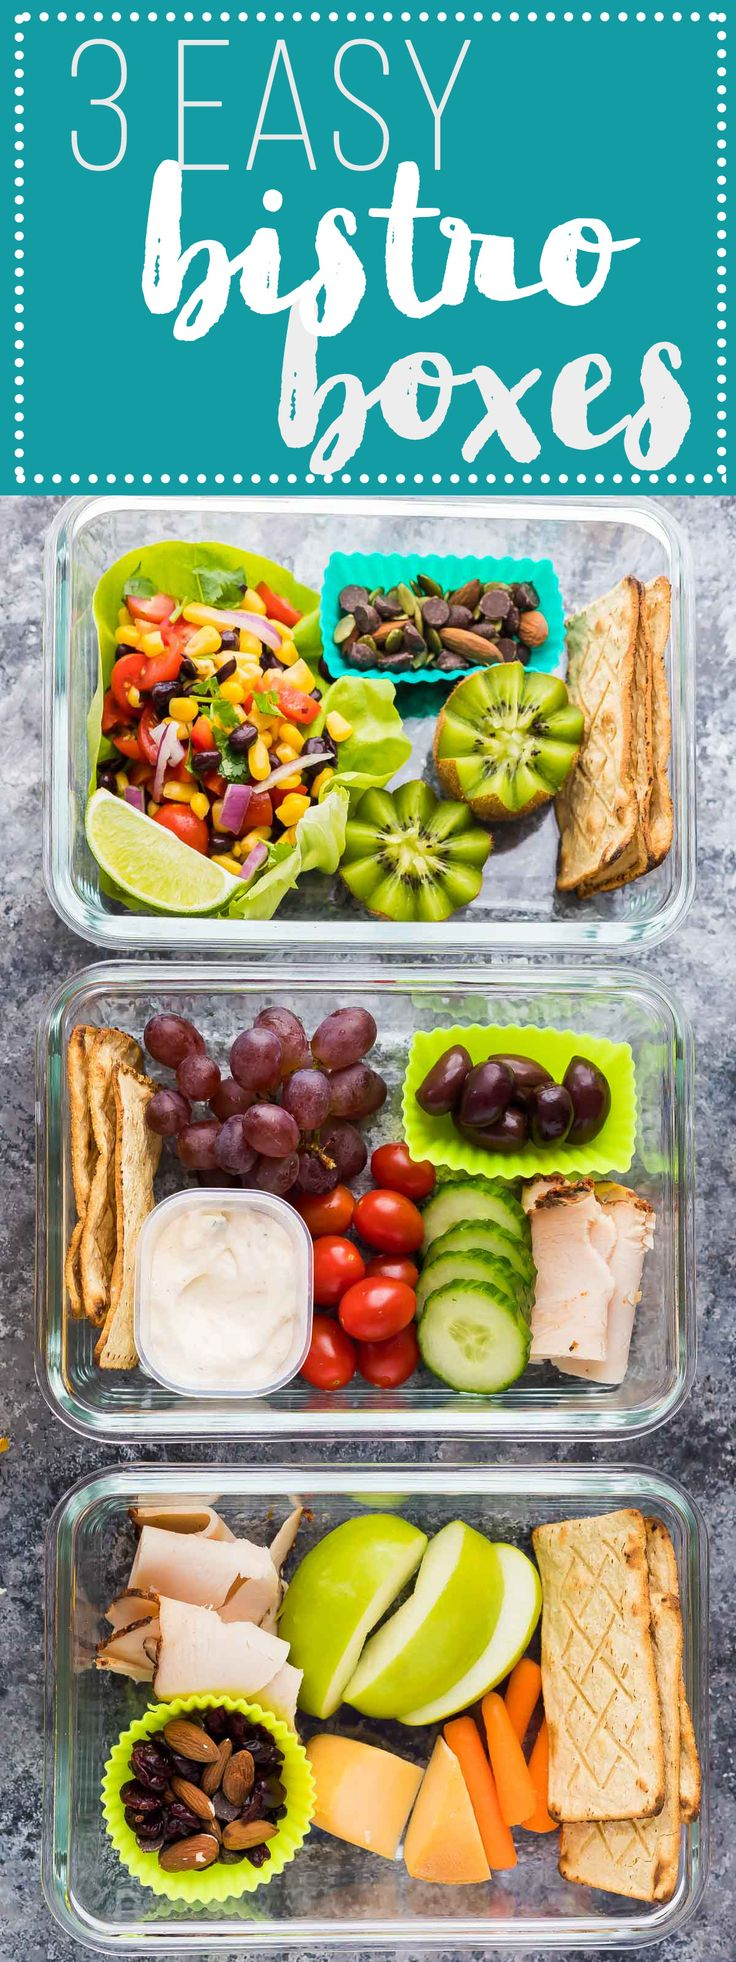 These easy bistro lunch boxes (including a yummy Mexican Black Bean Salad!) can be prepared ahead of time for an easy grab and go lunch!  A great meal prep option to mix things up through the week!